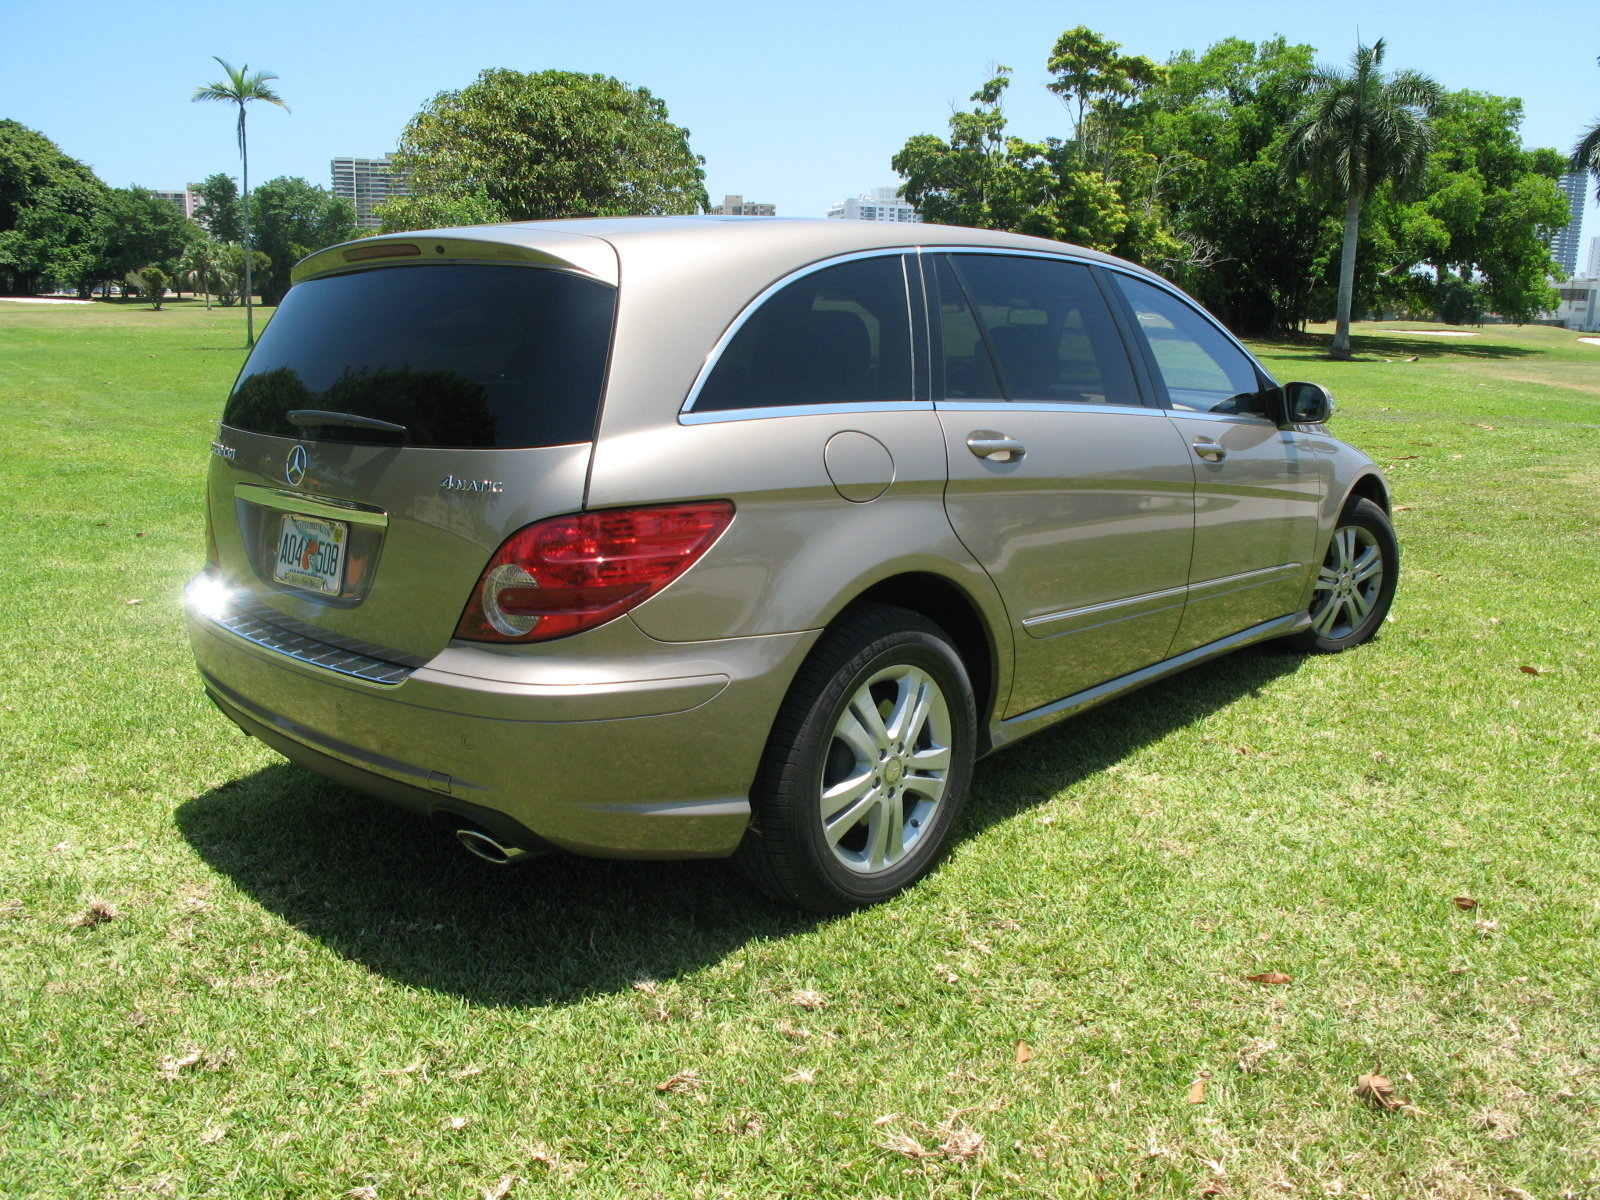 2008 mercedes r320 cdi 4 matic picture 248573 car review top speed. Black Bedroom Furniture Sets. Home Design Ideas